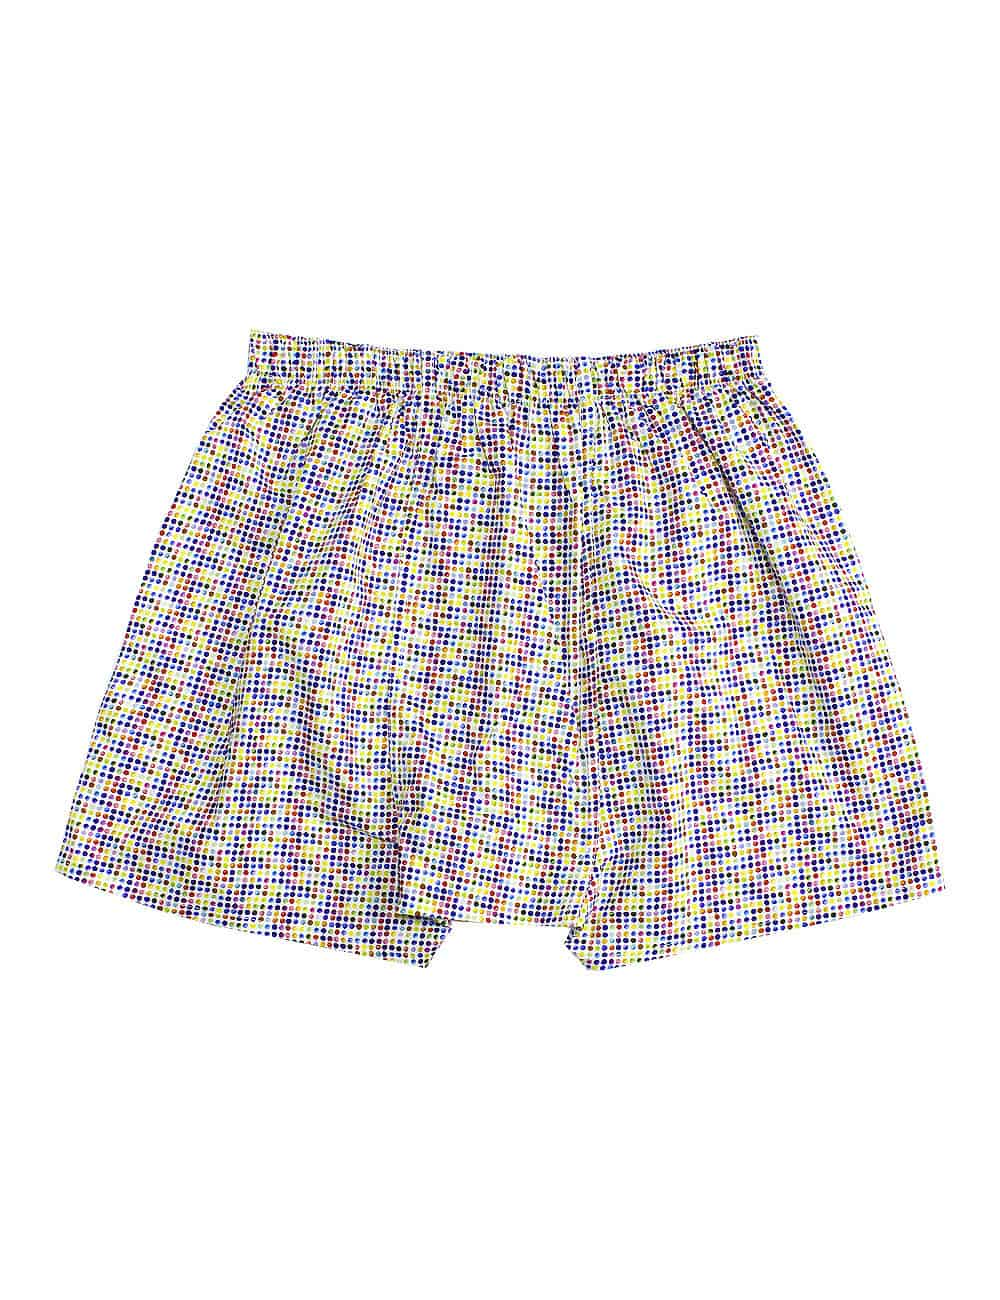 100% Premium Cotton Multi Colour Polka Dots Print Button Fly Boxer Shorts with Silky Finish IW1A12.1